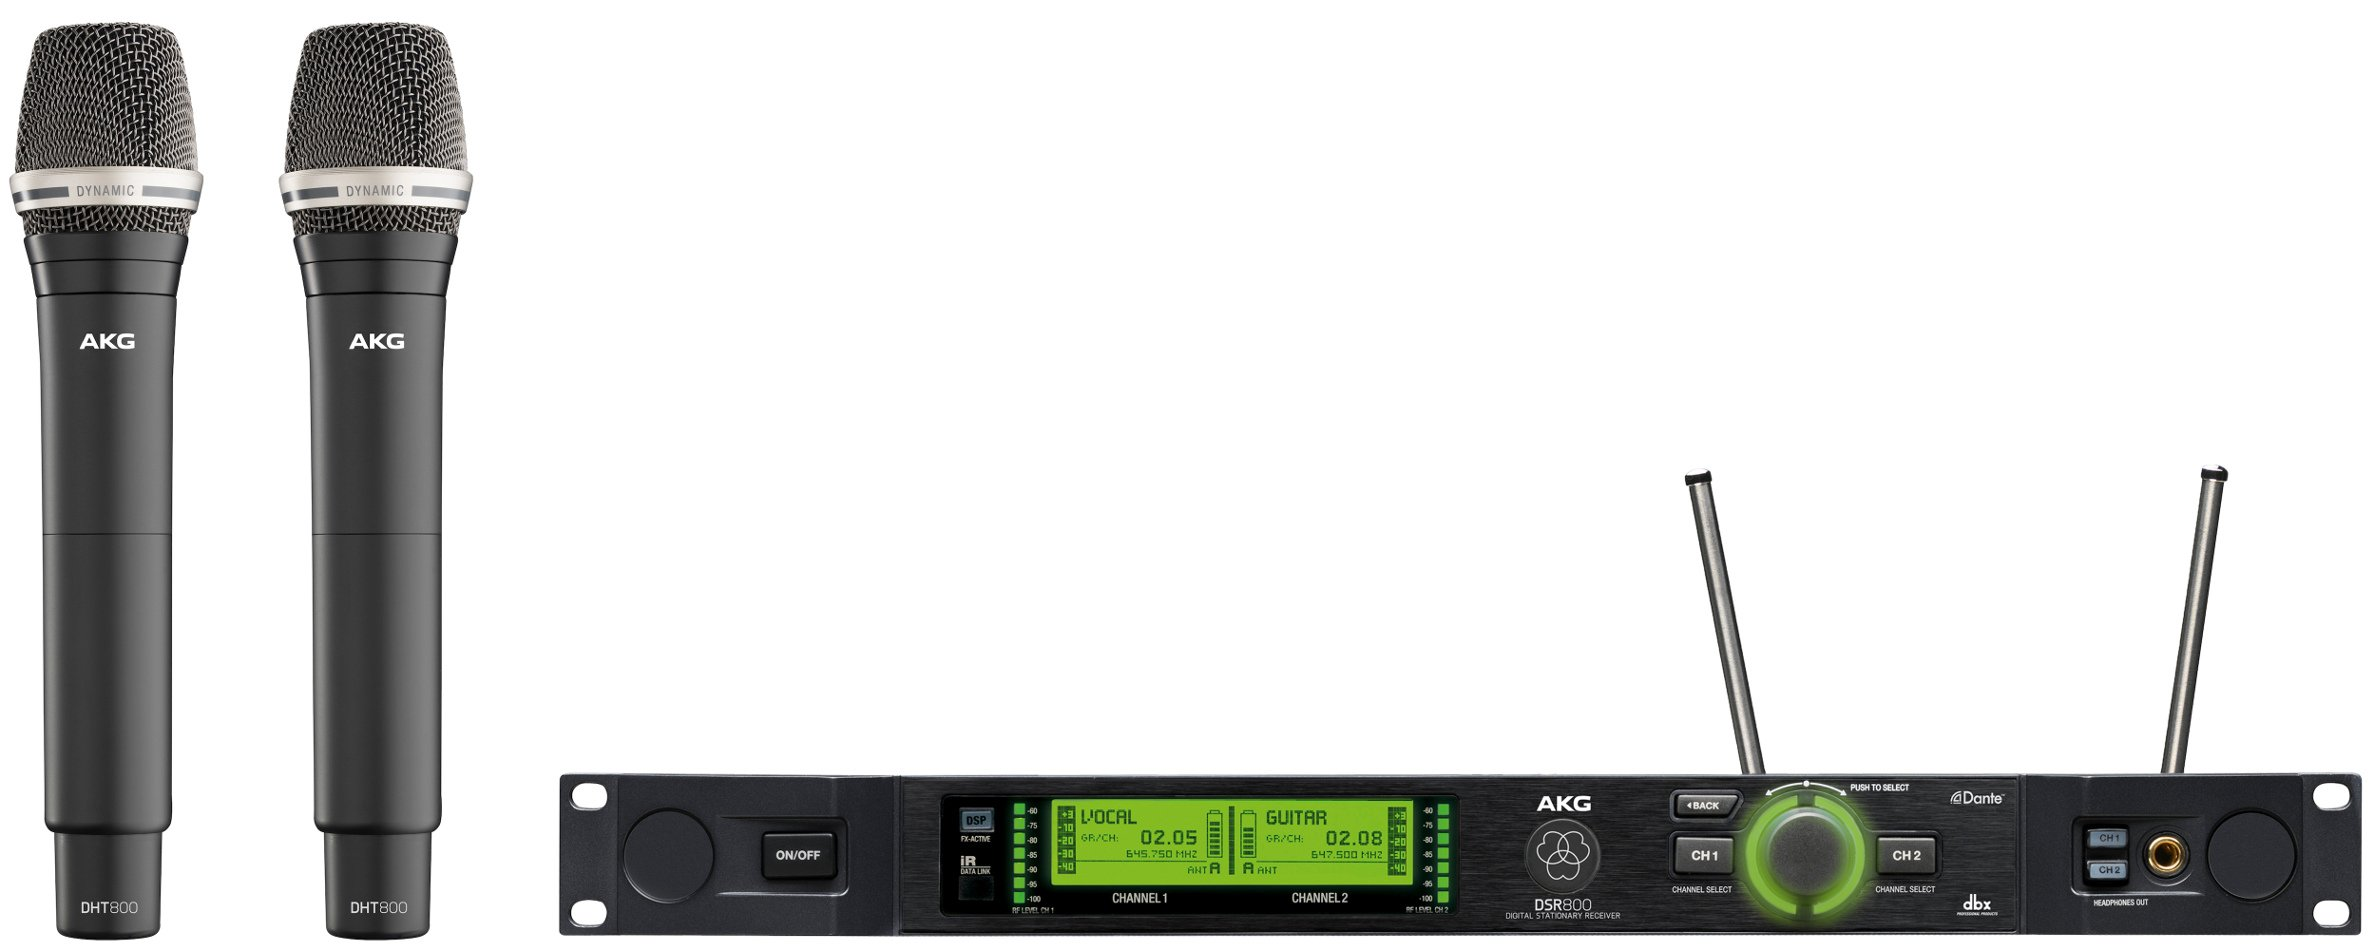 AKG DMS800 Vocal Set D7 Digital Wireless Mic System for Band 1 DMS800-D7-VOCAL-SET